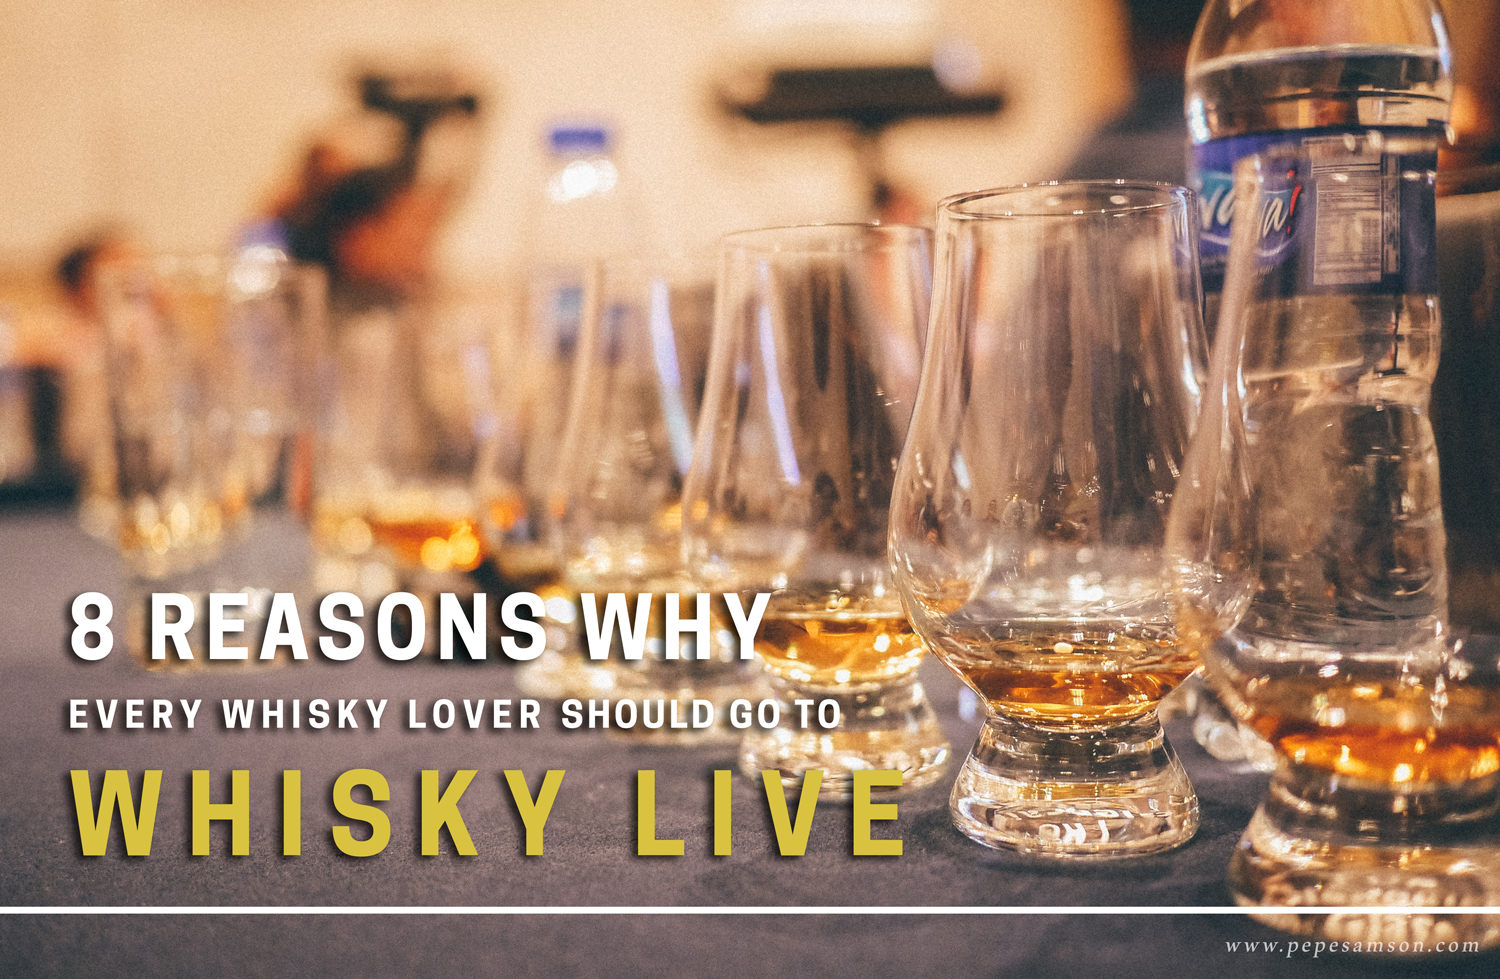 8 Reasons Why Every Whisky Lover Should Go to Whisky Live